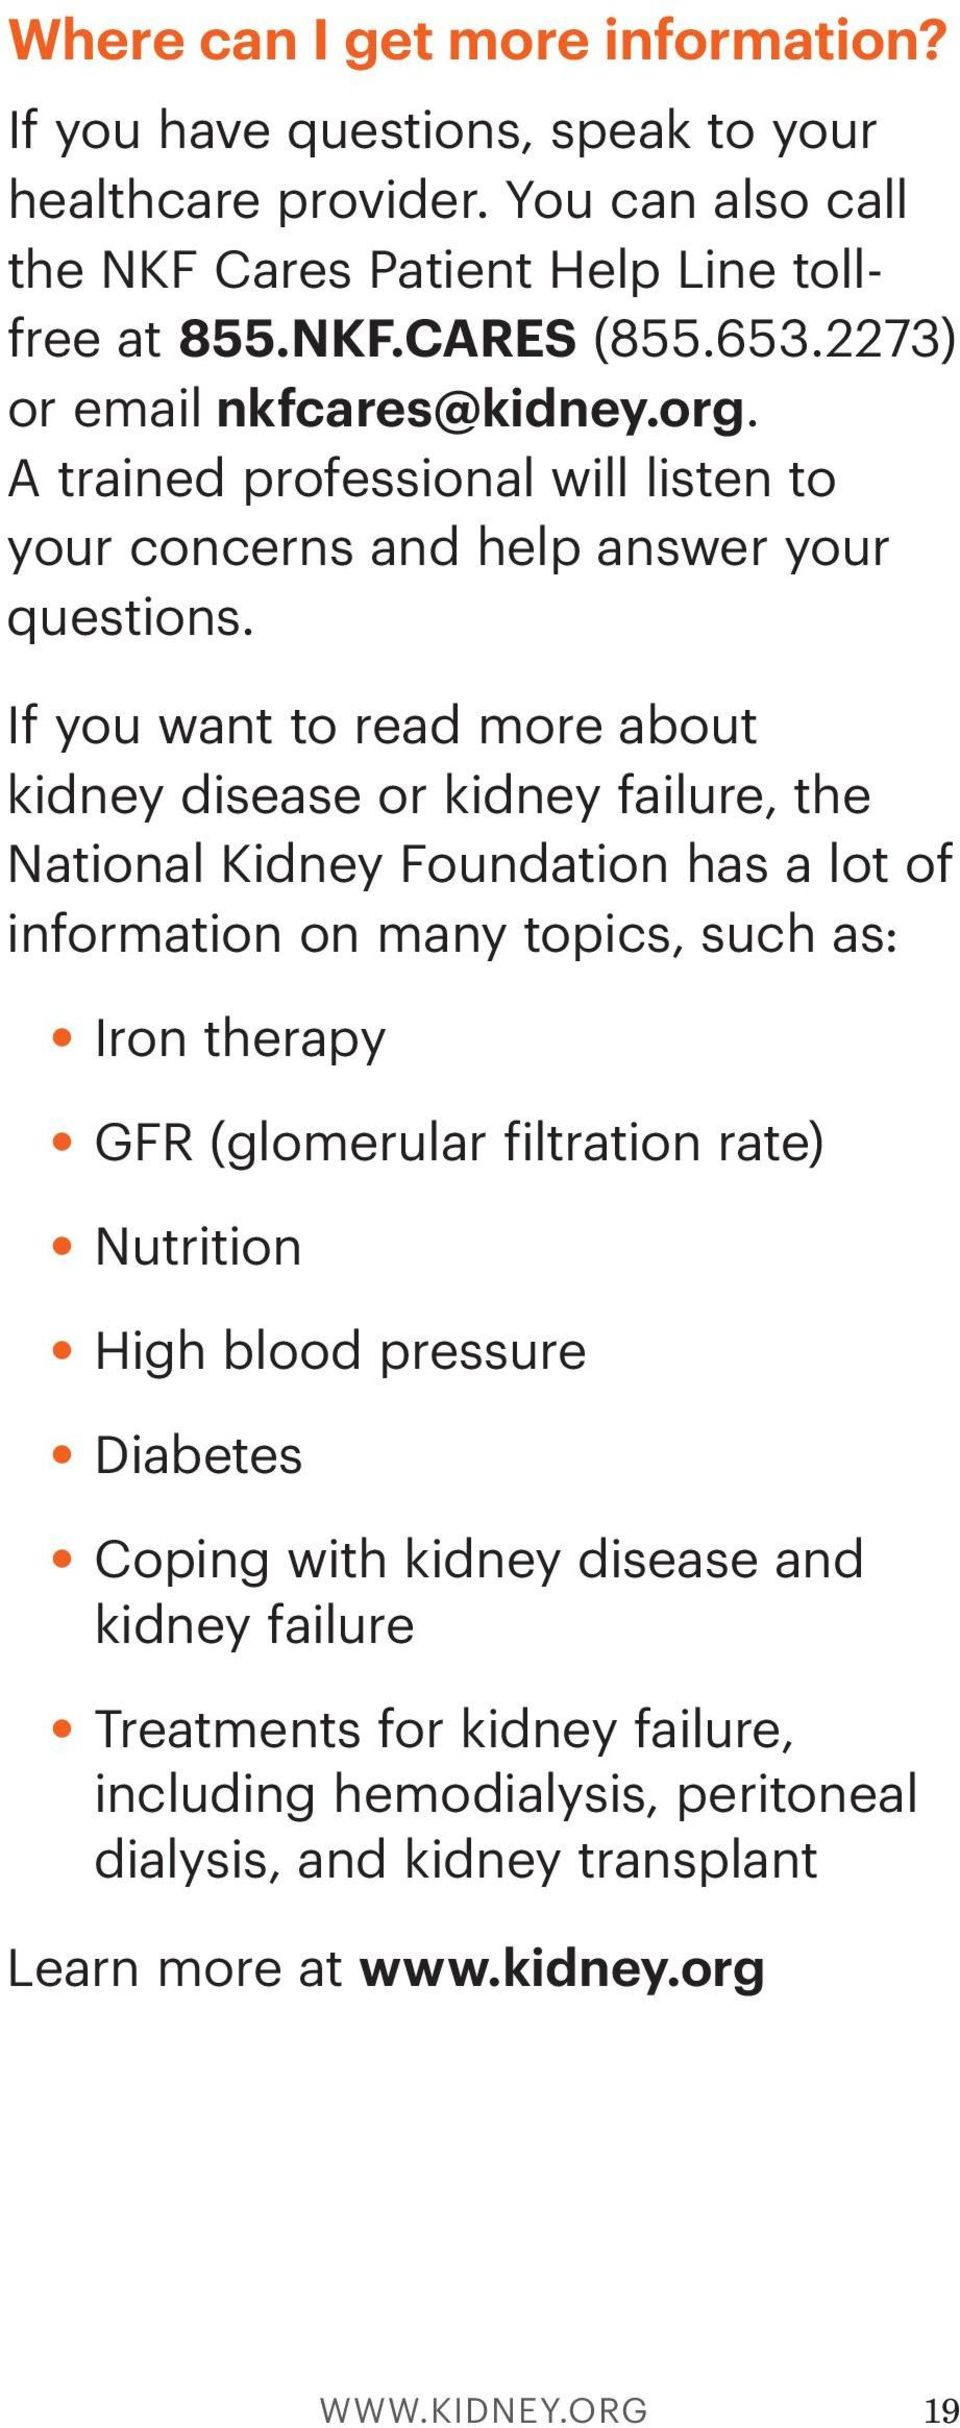 If you want to read more about kidney disease or kidney failure, the National Kidney Foundation has a lot of information on many topics, such as: Iron therapy GFR (glomerular